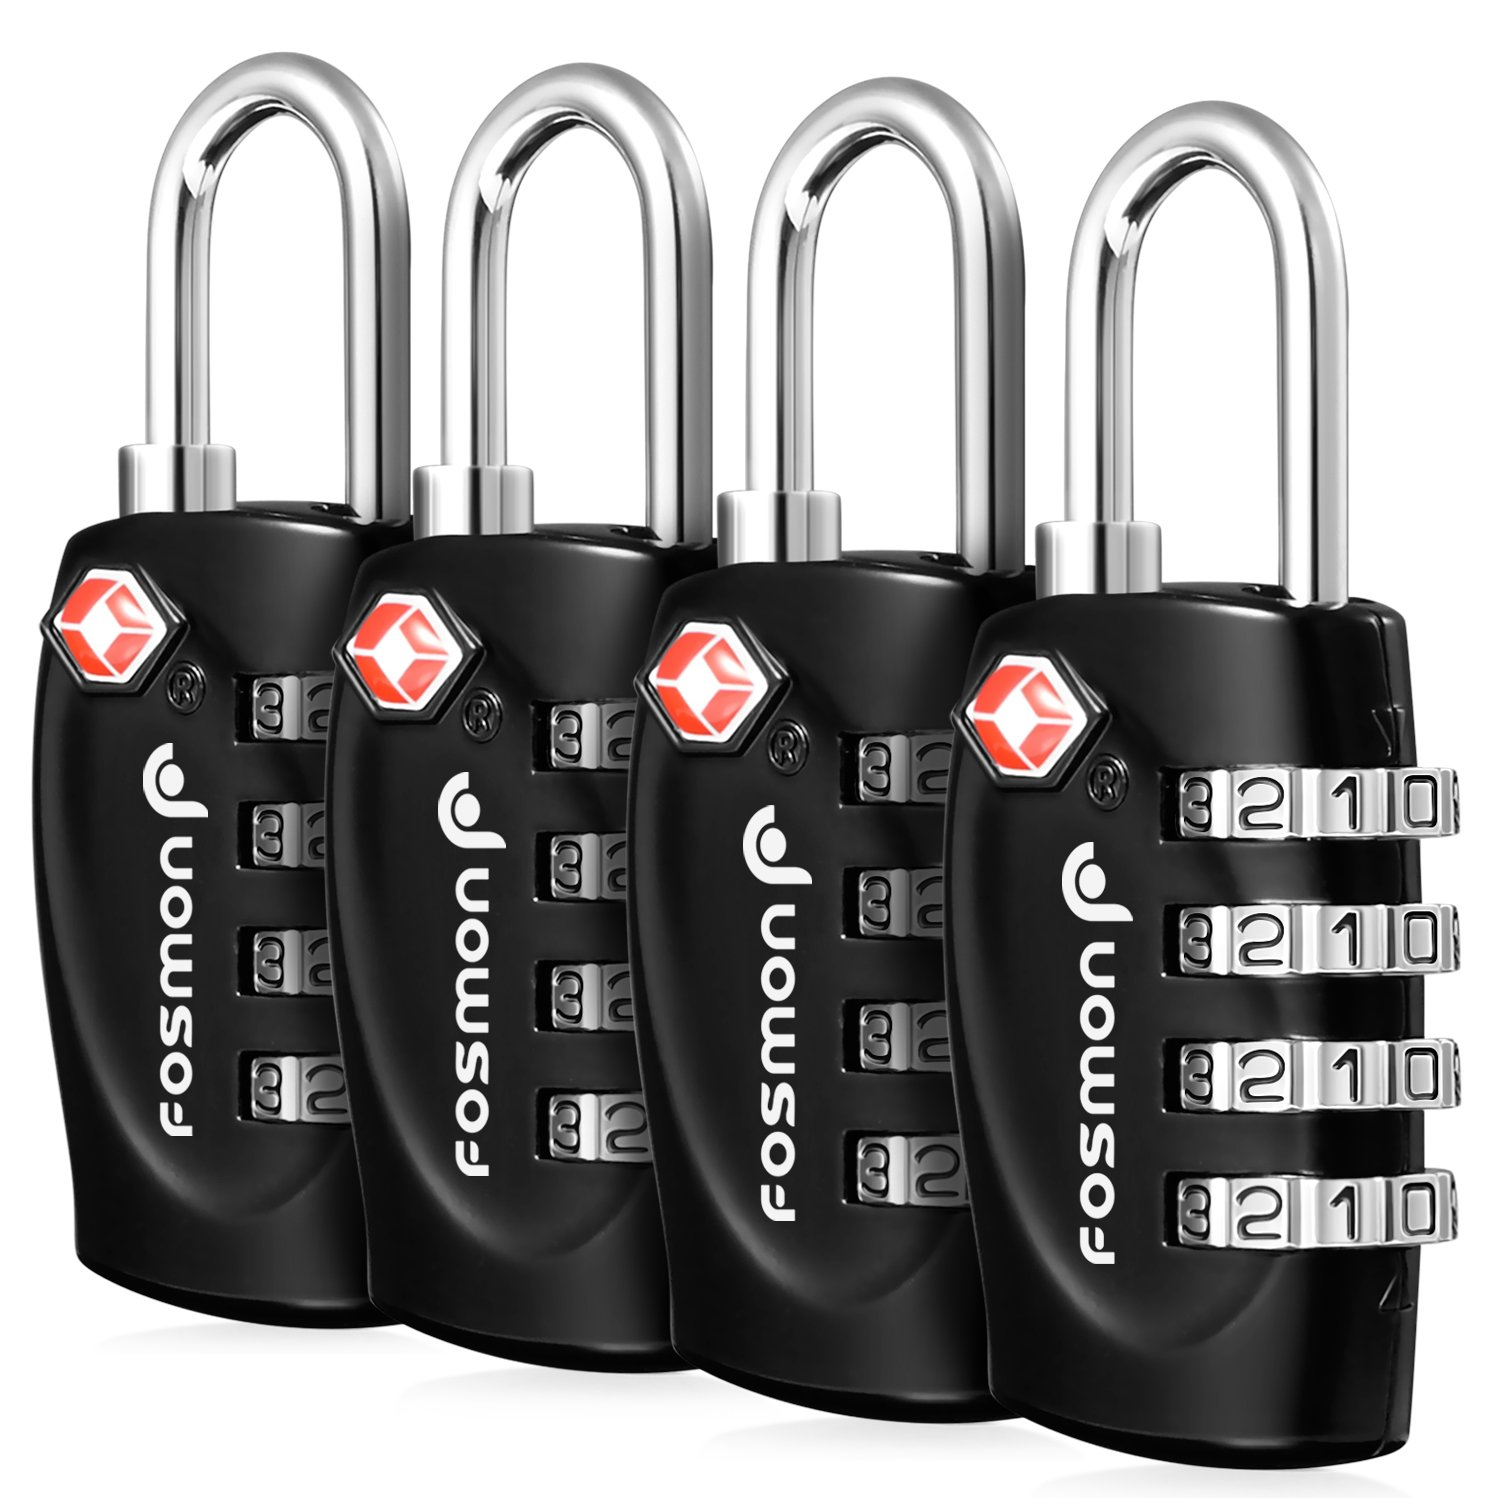 TSA Approved Luggage Locks, Fosmon (4 Pack) 4 Digit Combination Padlock Codes with Alloy Body for Suit Case, Lockers, Bike Locks